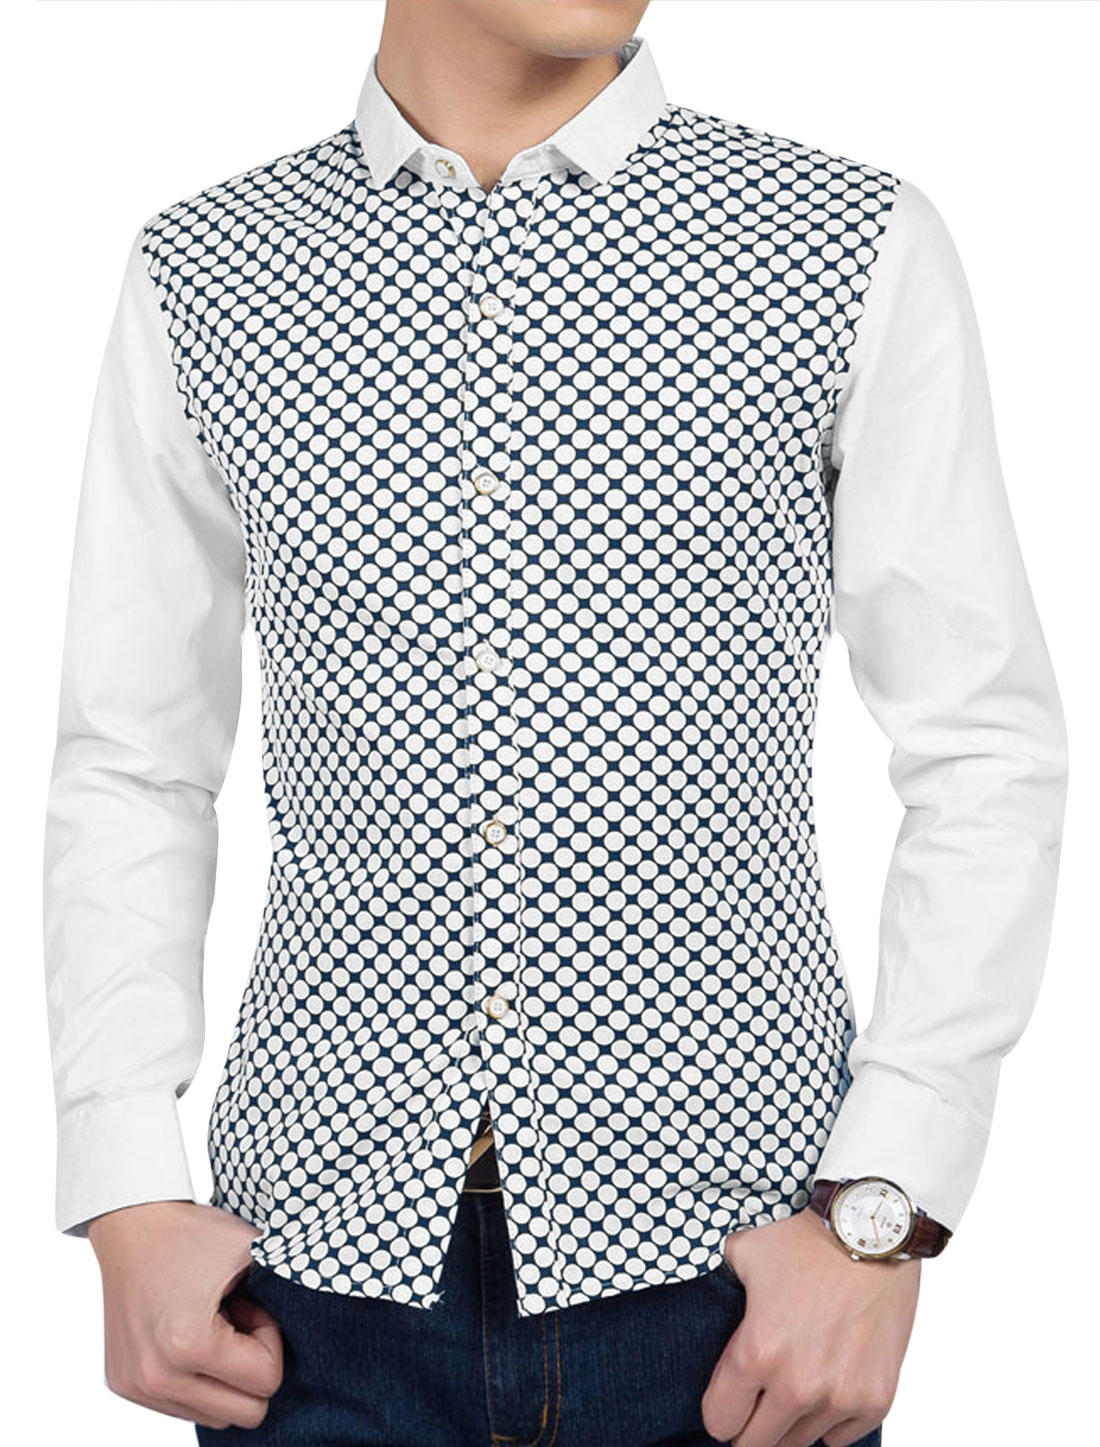 Man Polka Dots Prints Long Sleeves Slim Fit Casual Shirts Navy Blue White M